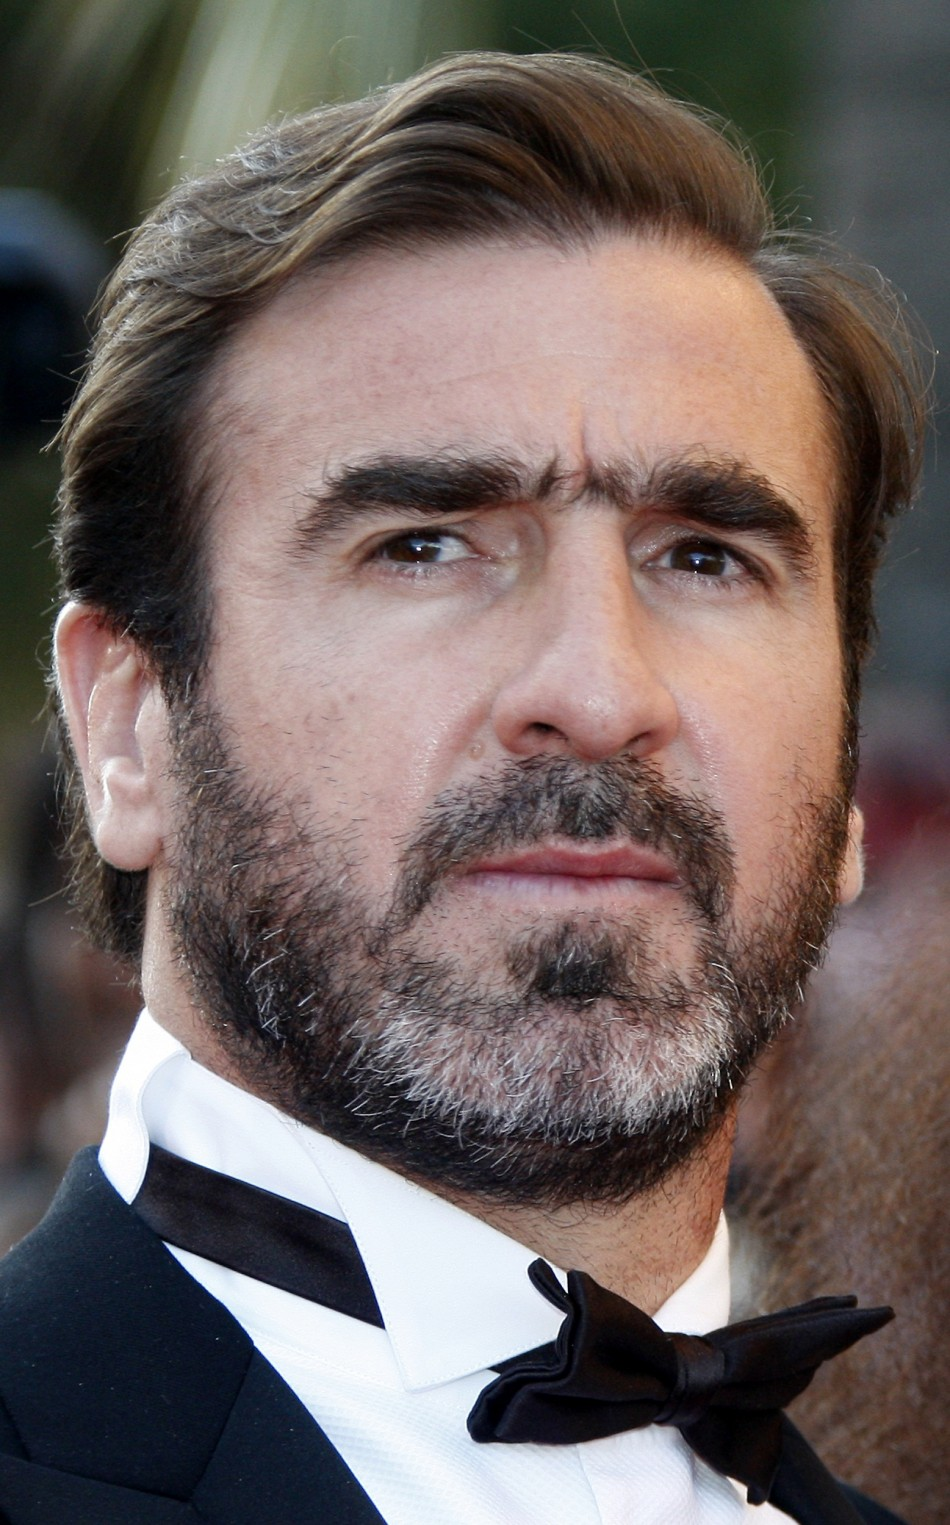 Eric Cantona has reportedly set his sights on the French presidency